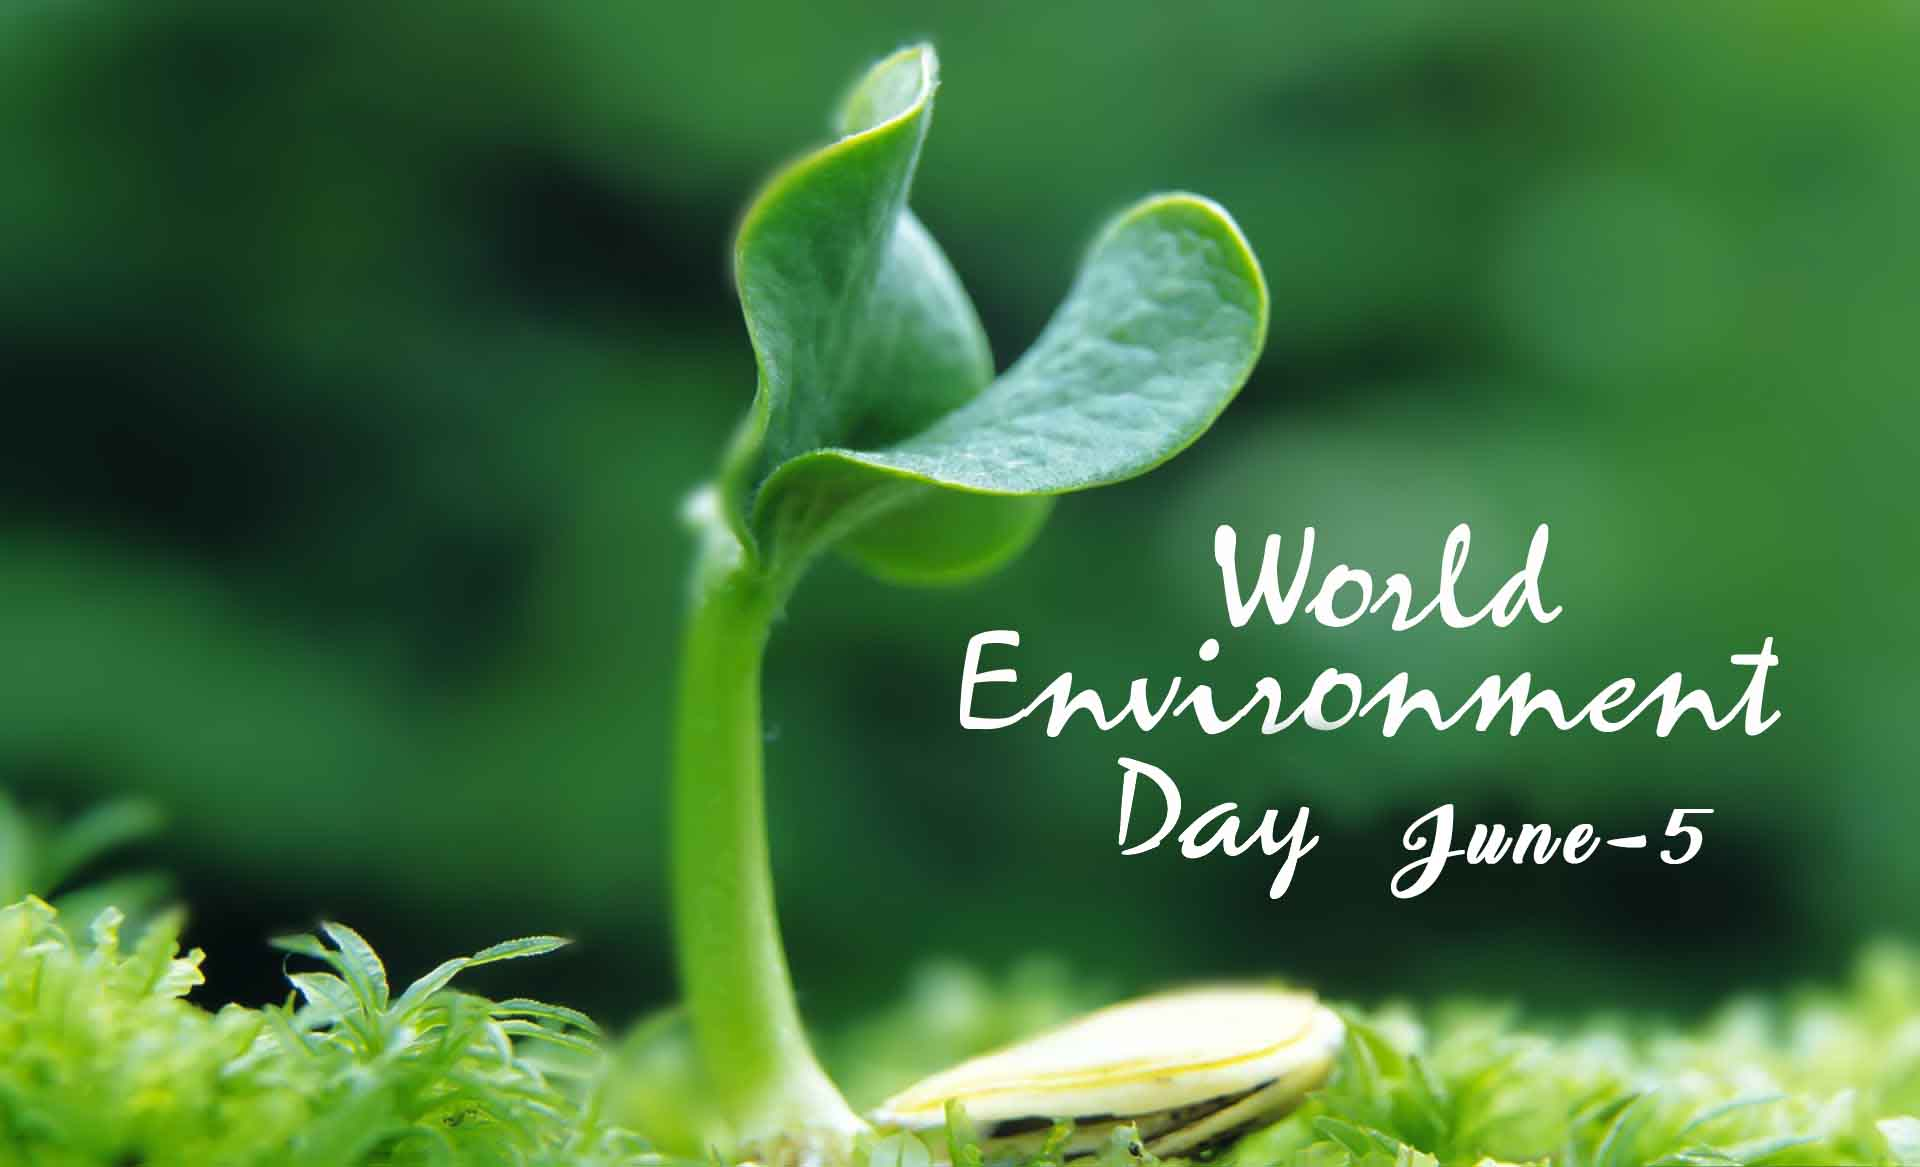 world environment day education article all educational articles about personality development career guidance leadership skills and more in com